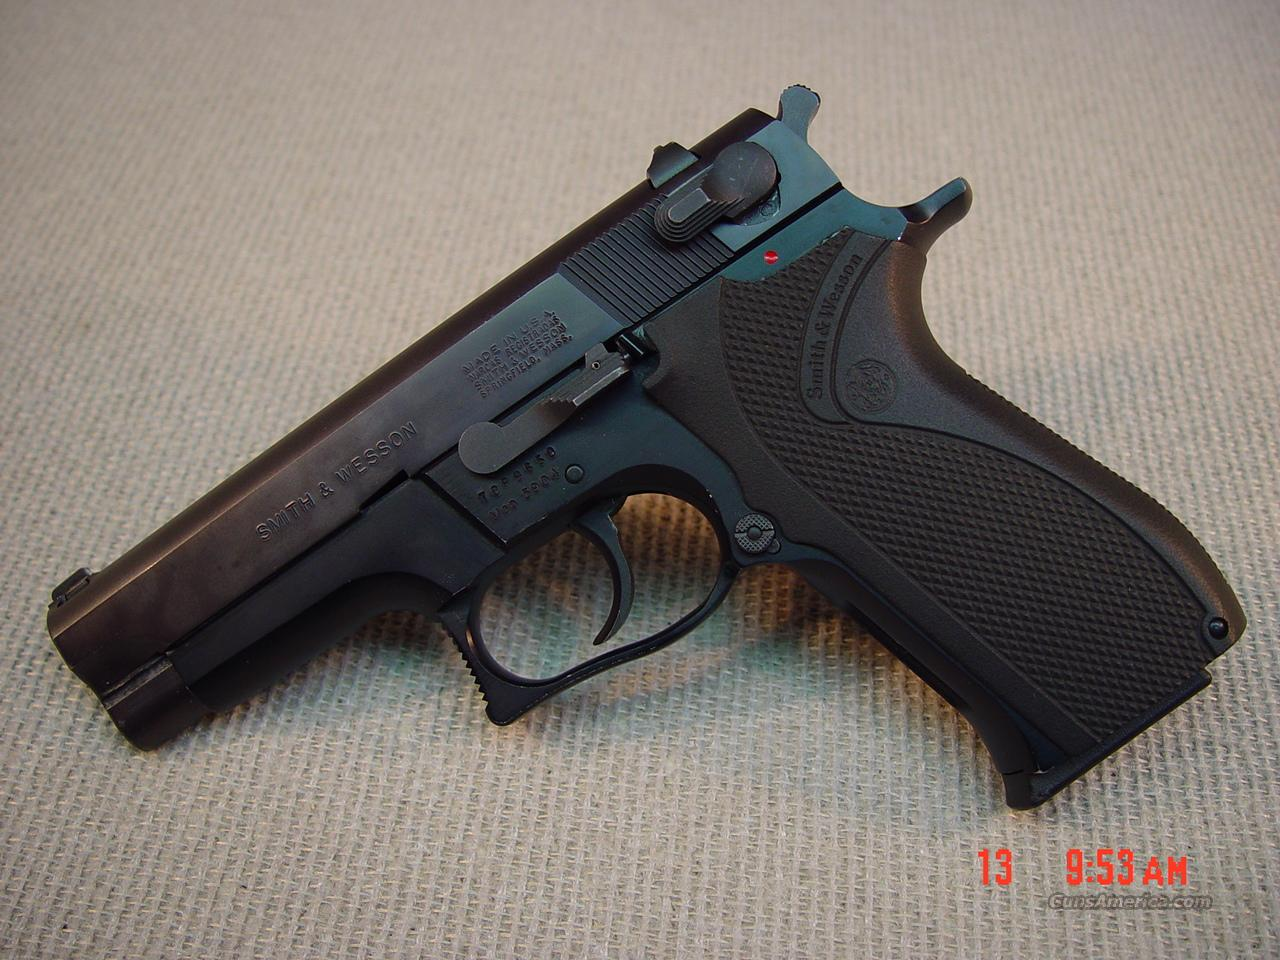 SMITH & WESSON Model 5904 9mm  Guns > Pistols > Smith & Wesson Pistols - Autos > Steel Frame